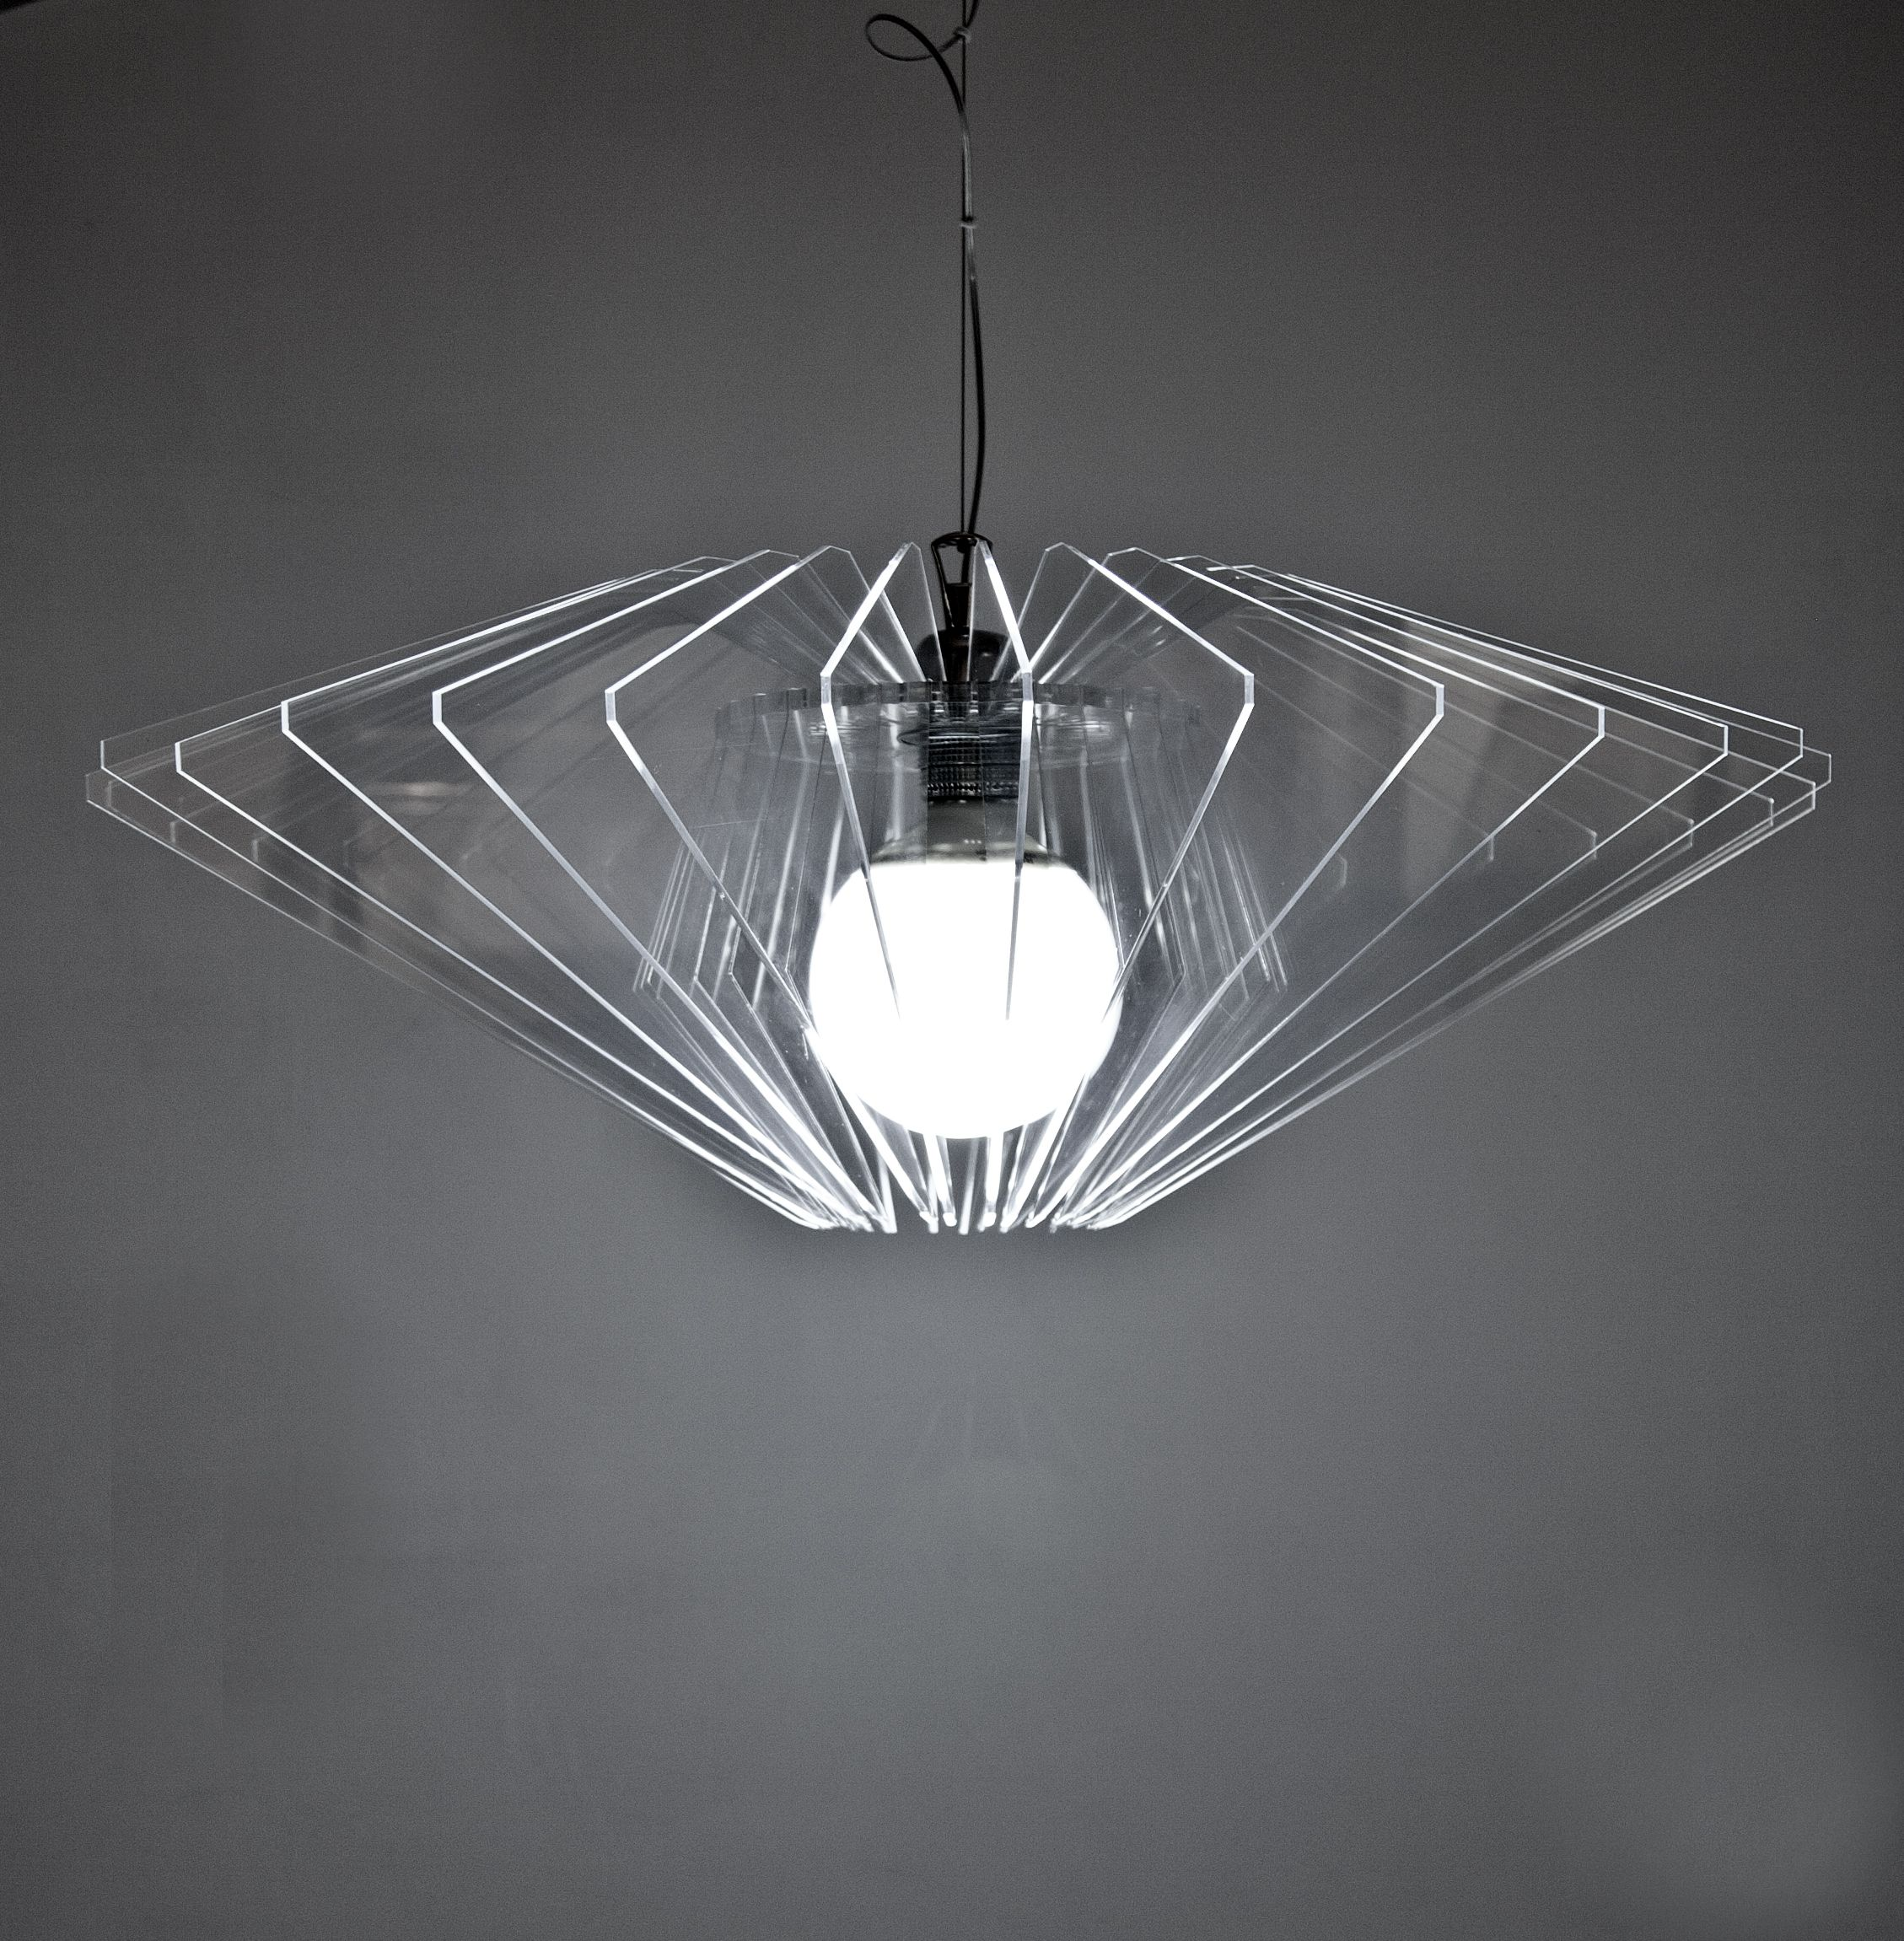 Diamanti lights is a collection of suspension lamps made in